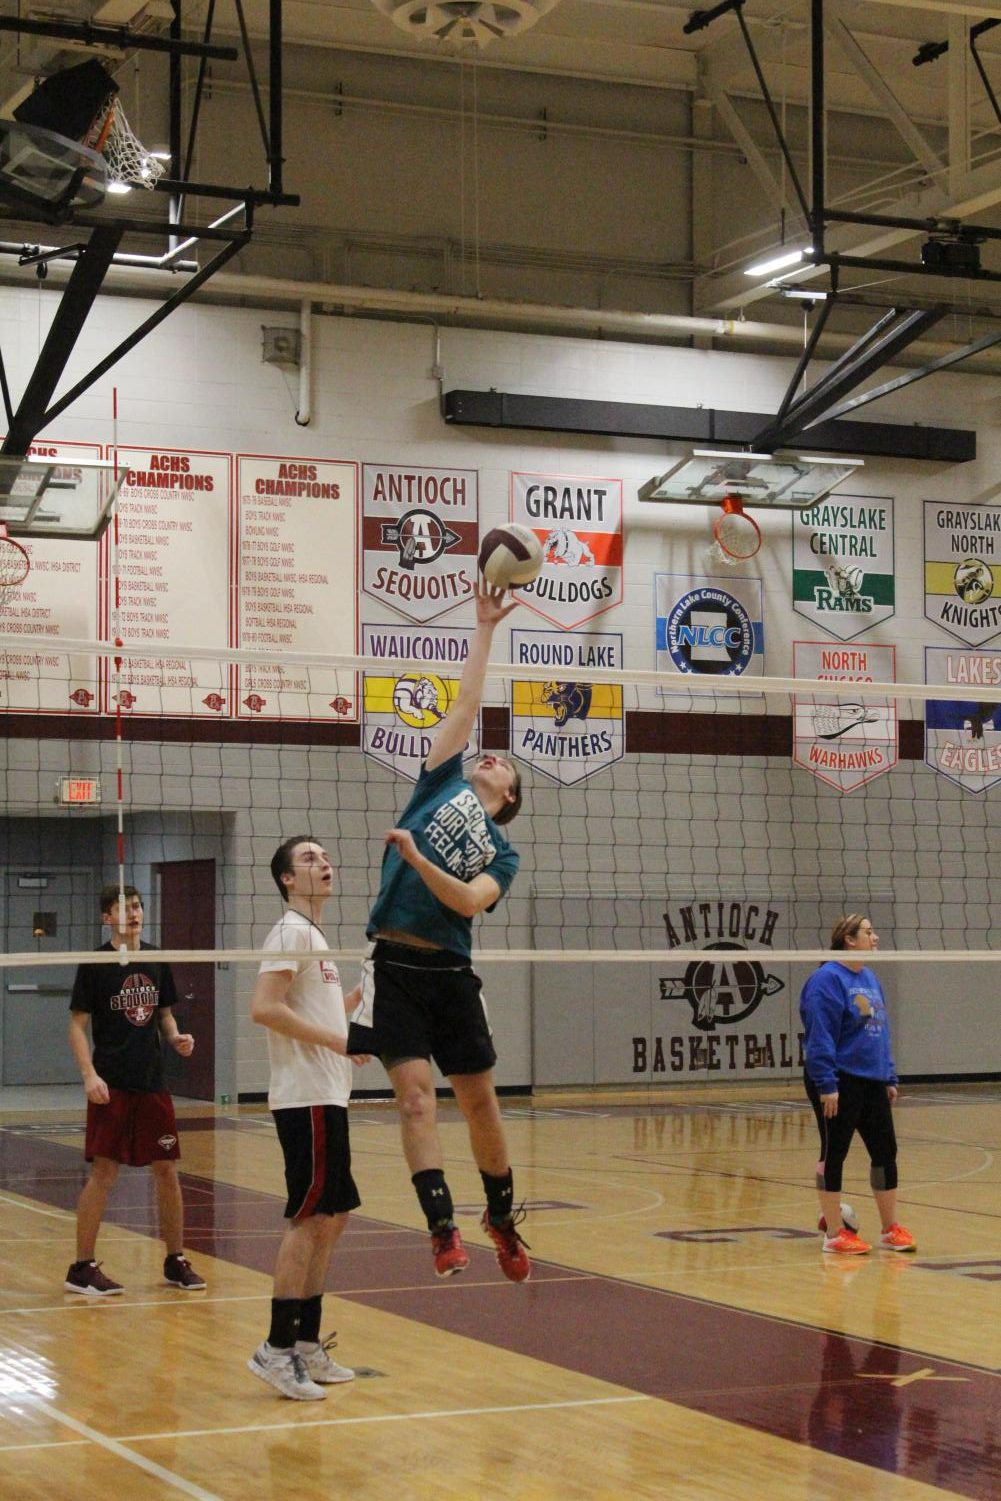 Senior Ryan Glassman attempts to spike the volleyball at practice.